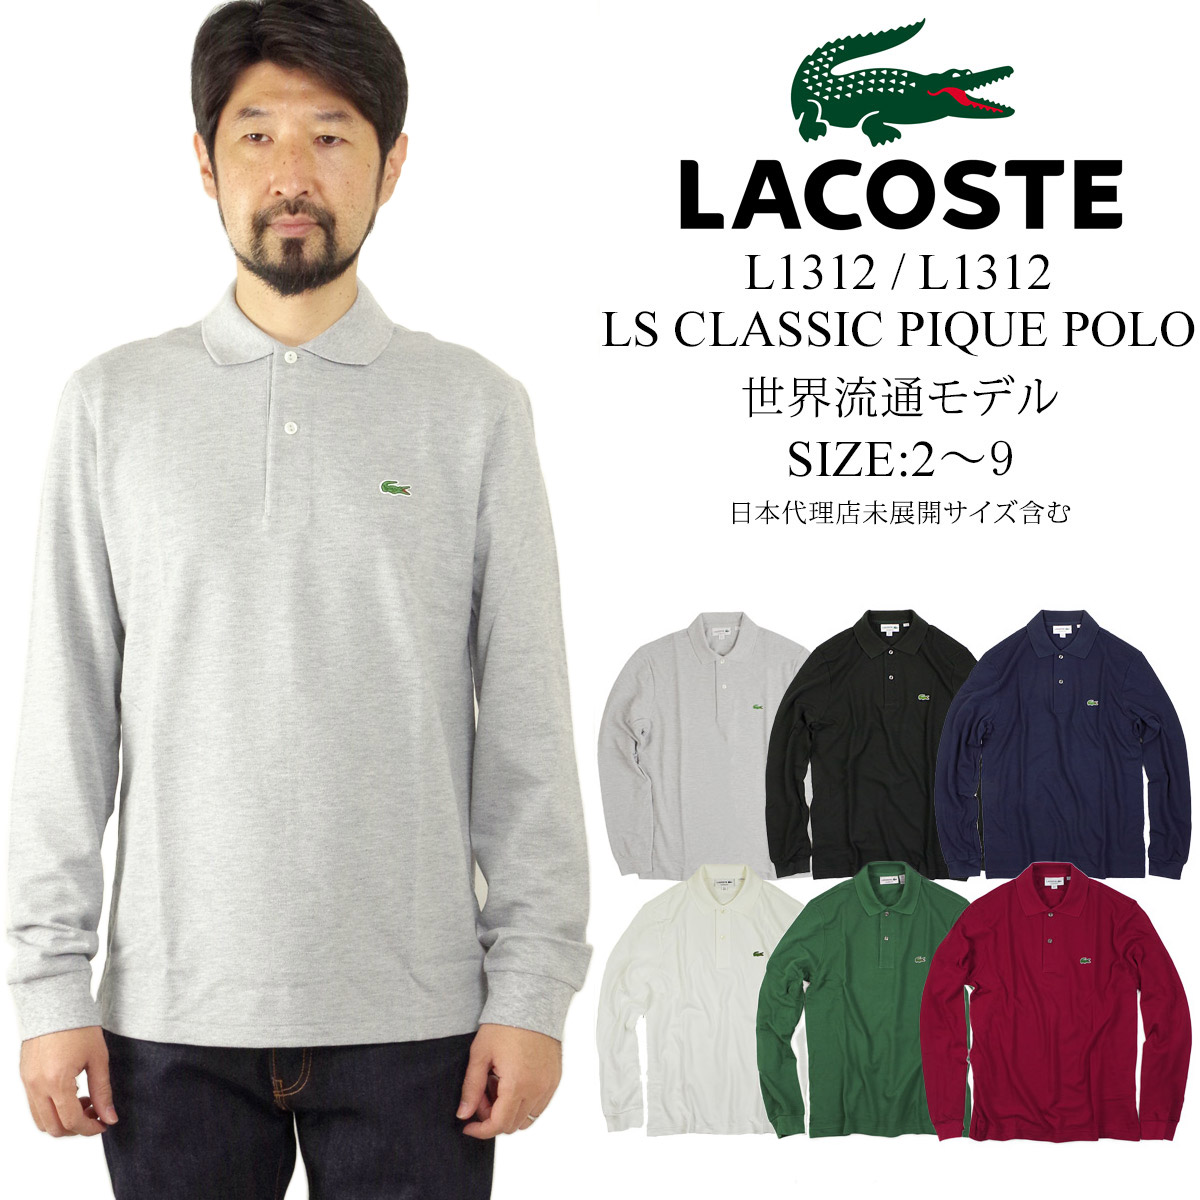 535fa499 Lacoste LACOSTE L1312/L1313 long sleeves polo shirt fawn world circulation  model BIG SIZE (big size LS Classic Pique Polo)